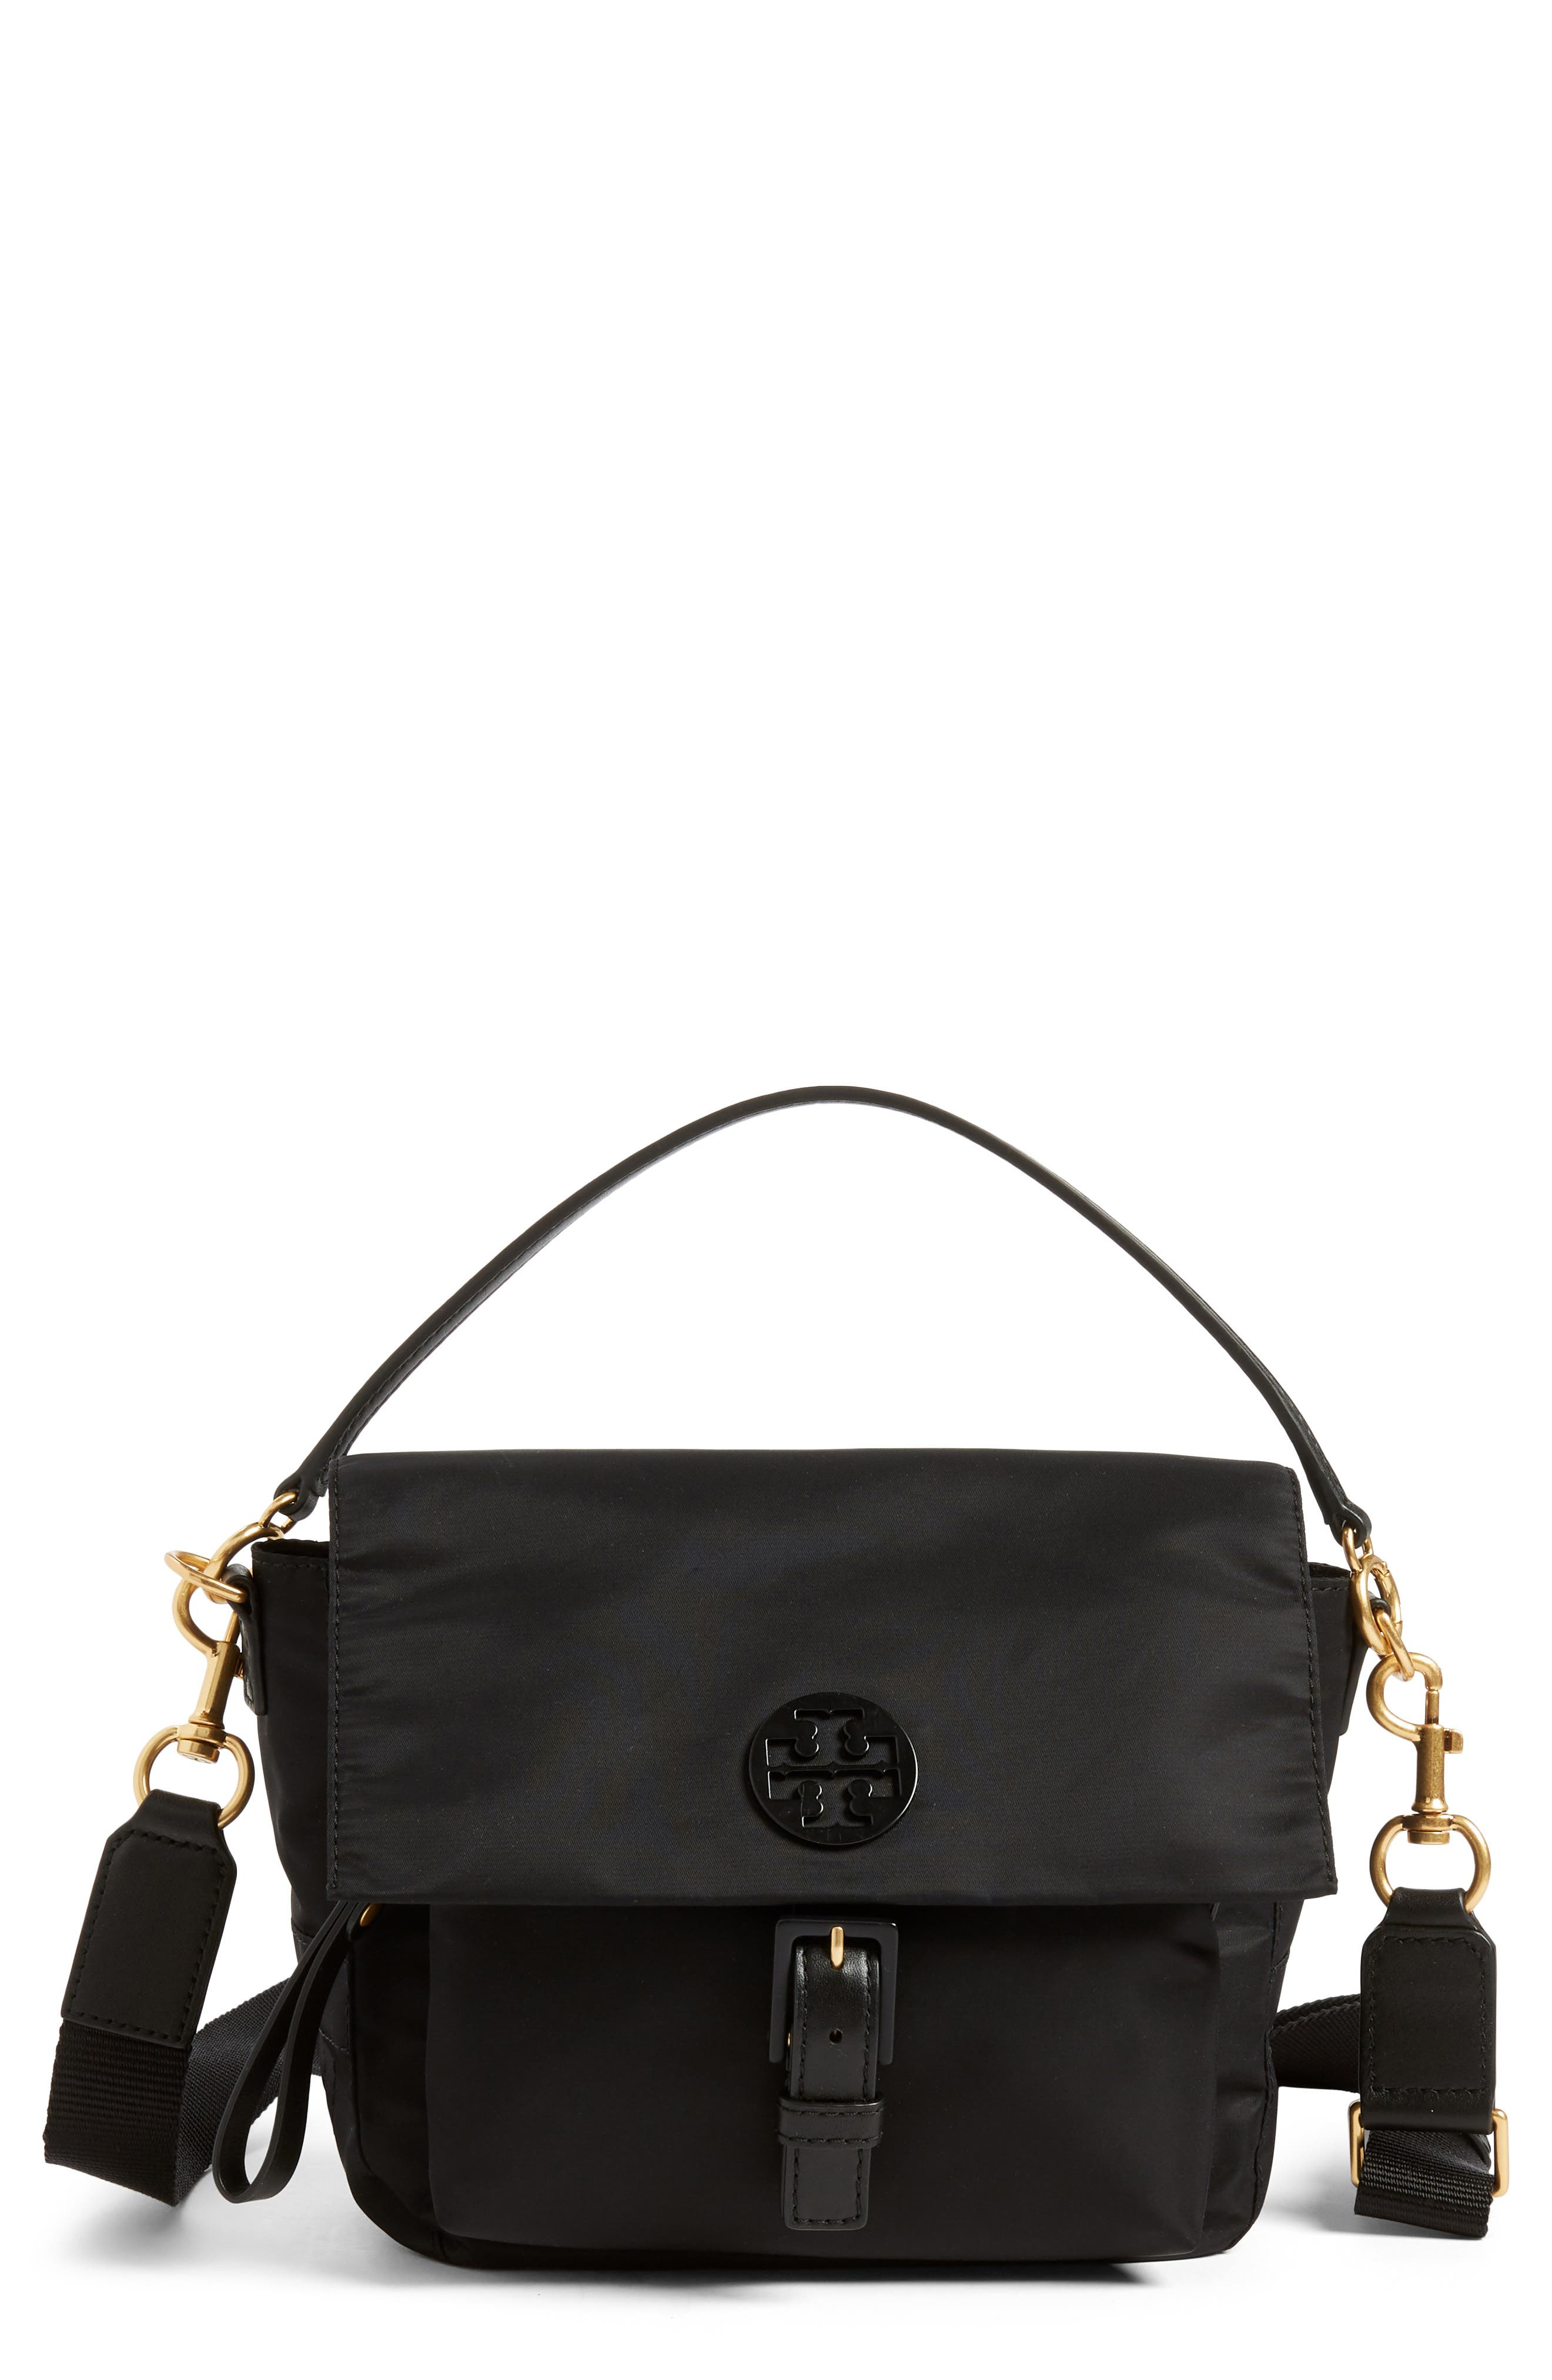 Tilda Nylon Crossbody Bag,                         Main,                         color, Black